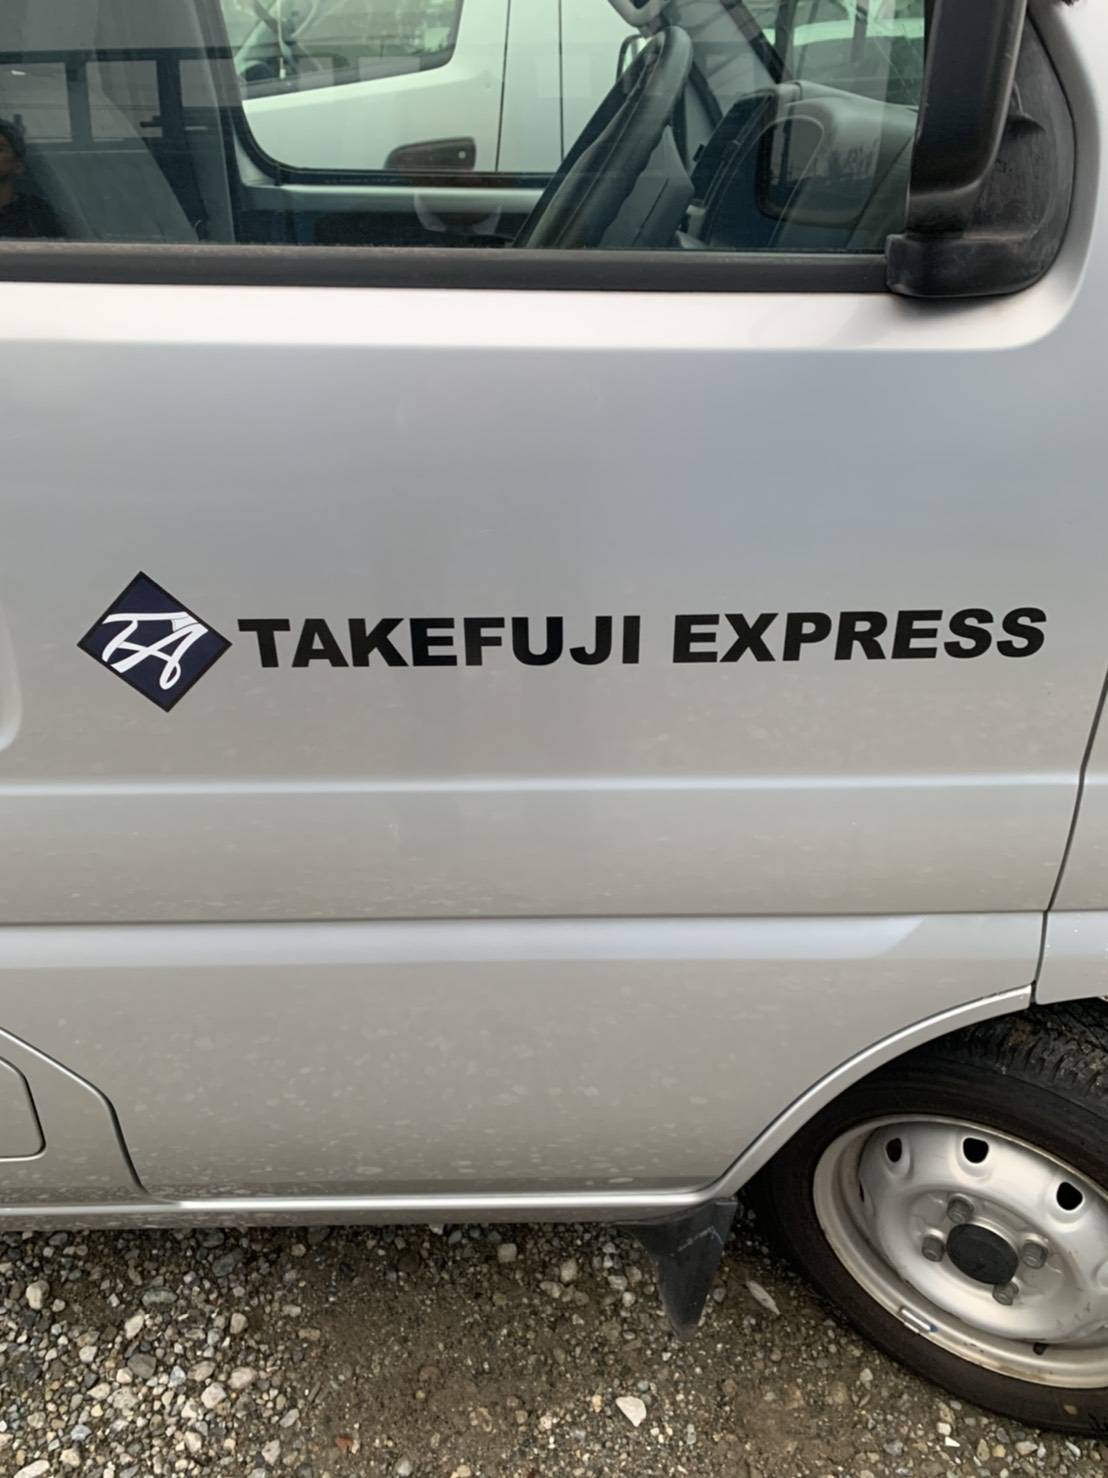 TAKEFUJIEXRPESSの求める人材とは?